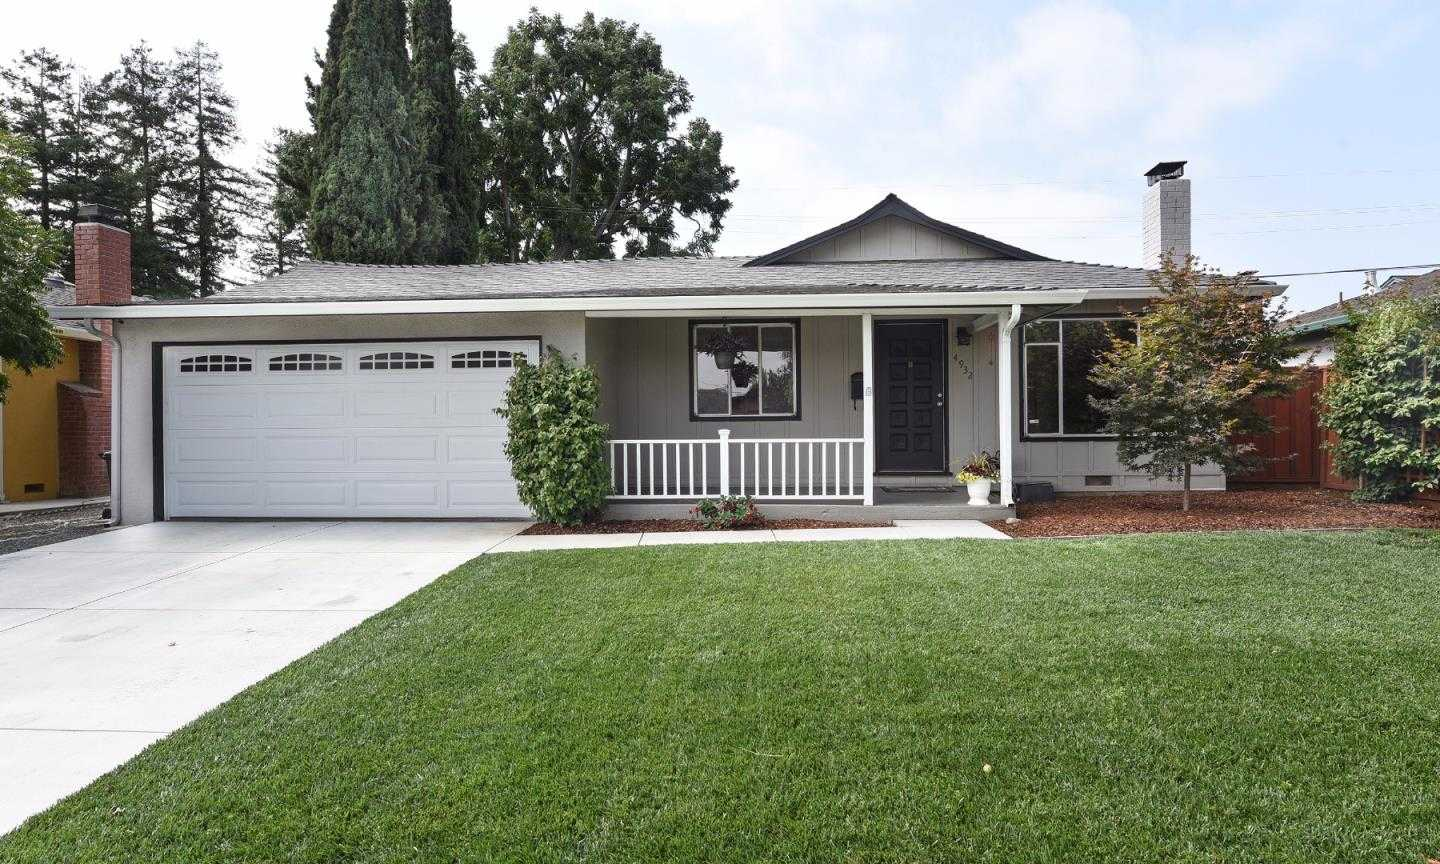 $1,448,000 - 3Br/2Ba -  for Sale in San Jose